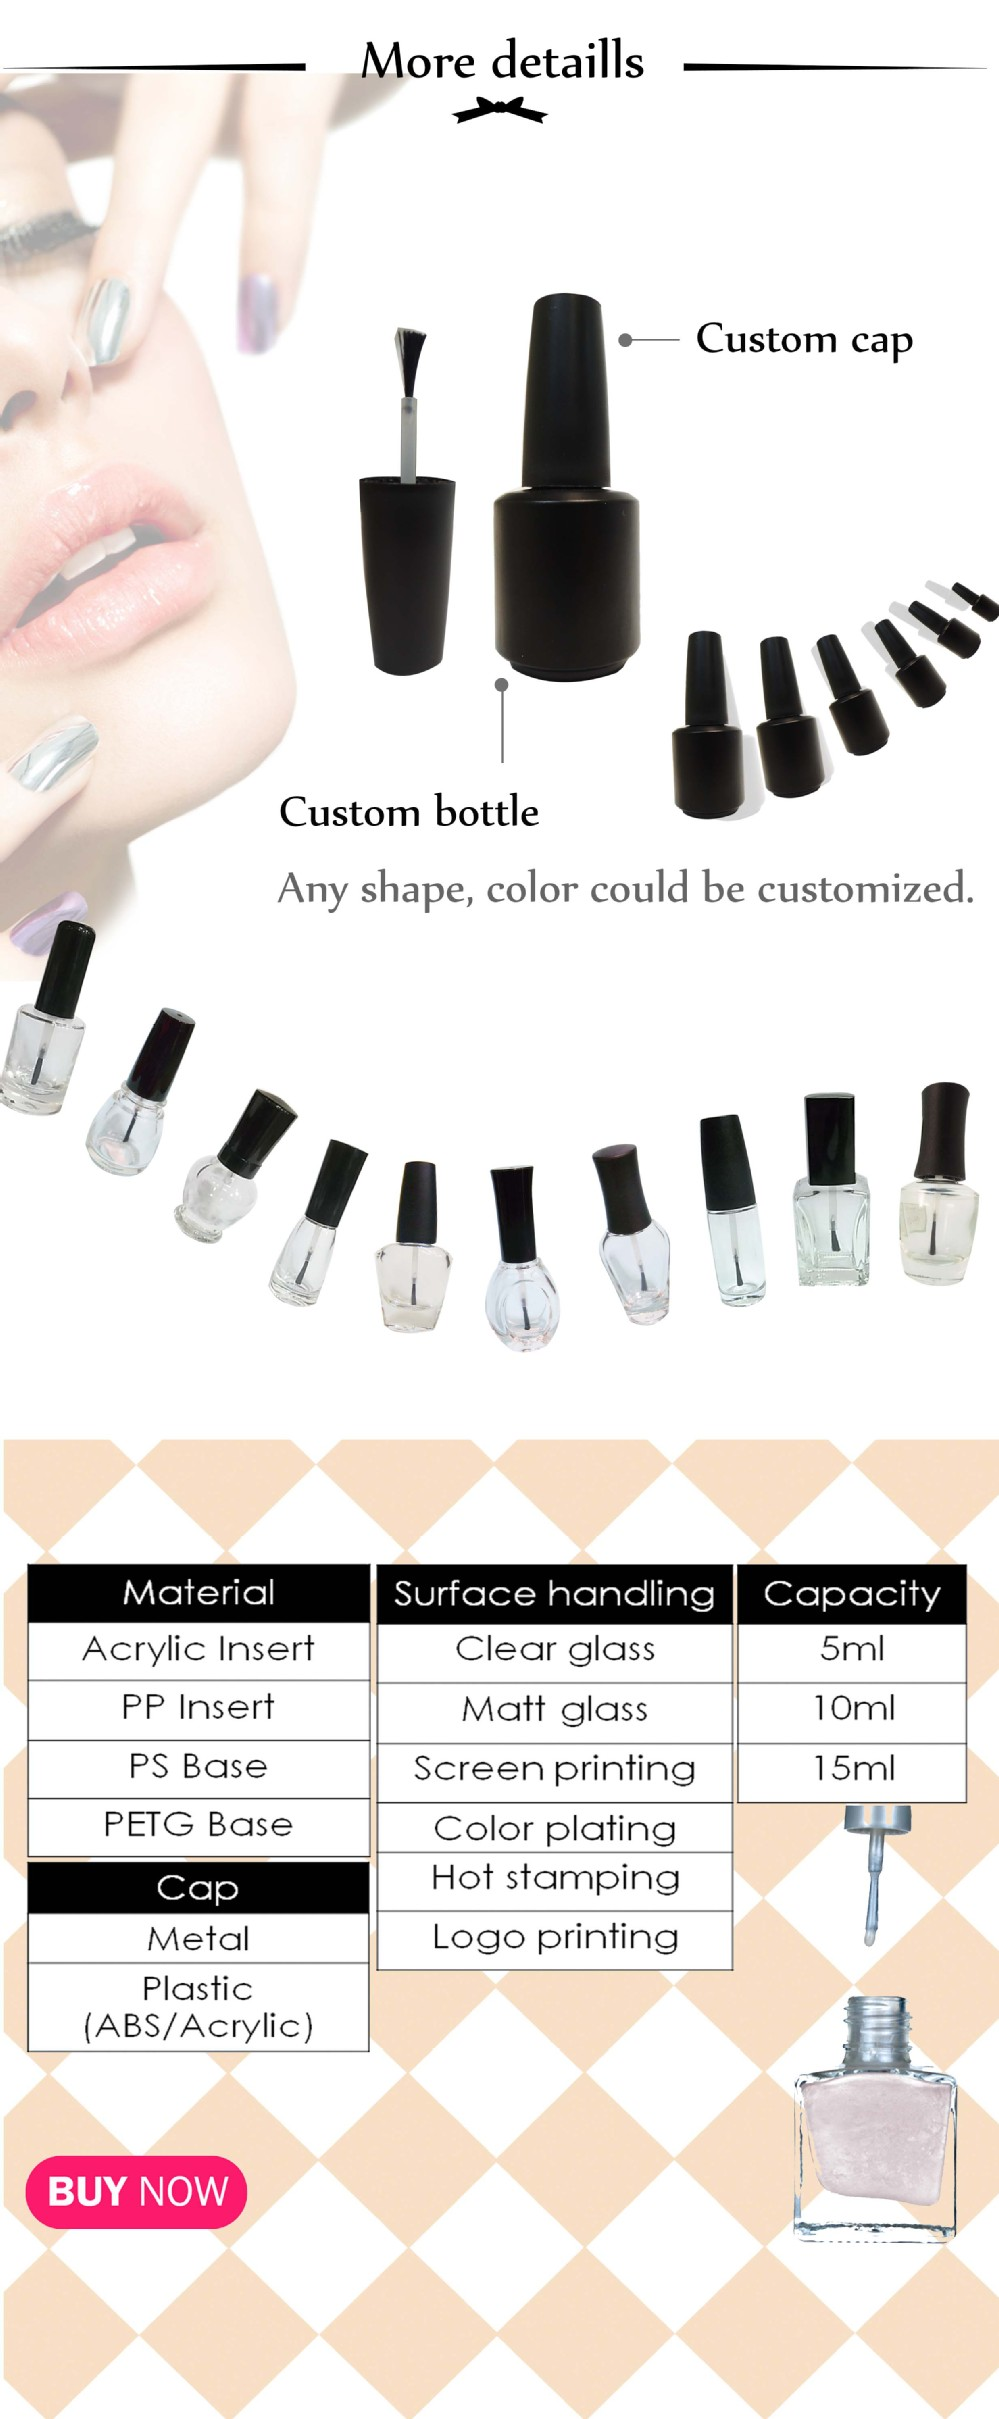 Custom design empty glass nail polish bottles for sale with wooden packaging empty bottle for nail polish